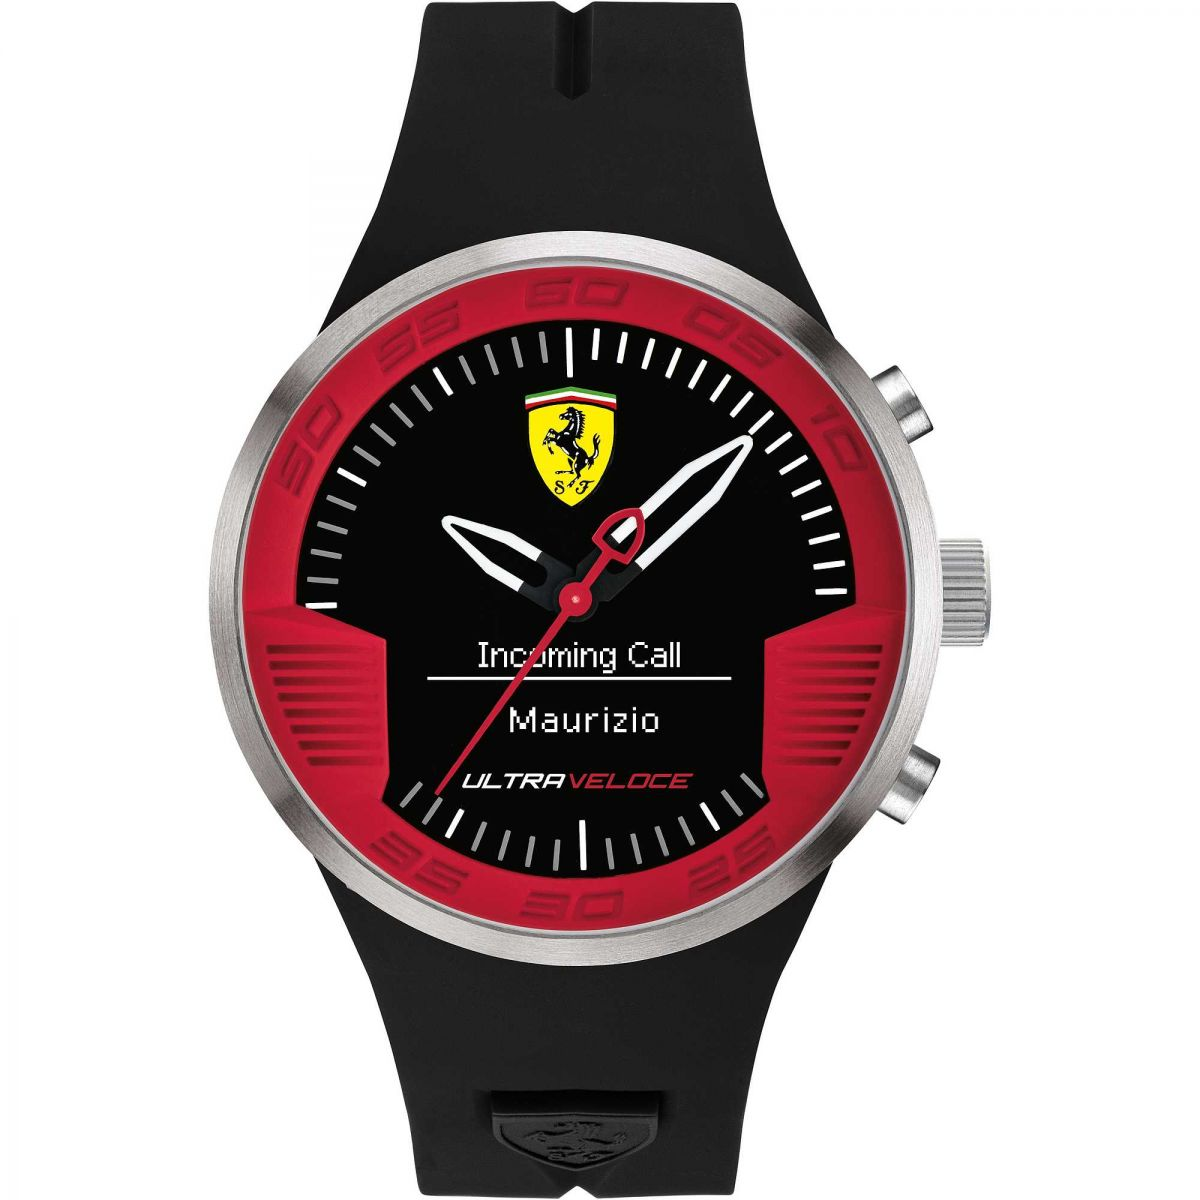 larger view ferrari tribute mp watches ruflyf photo hublot laferrari l watch gallery